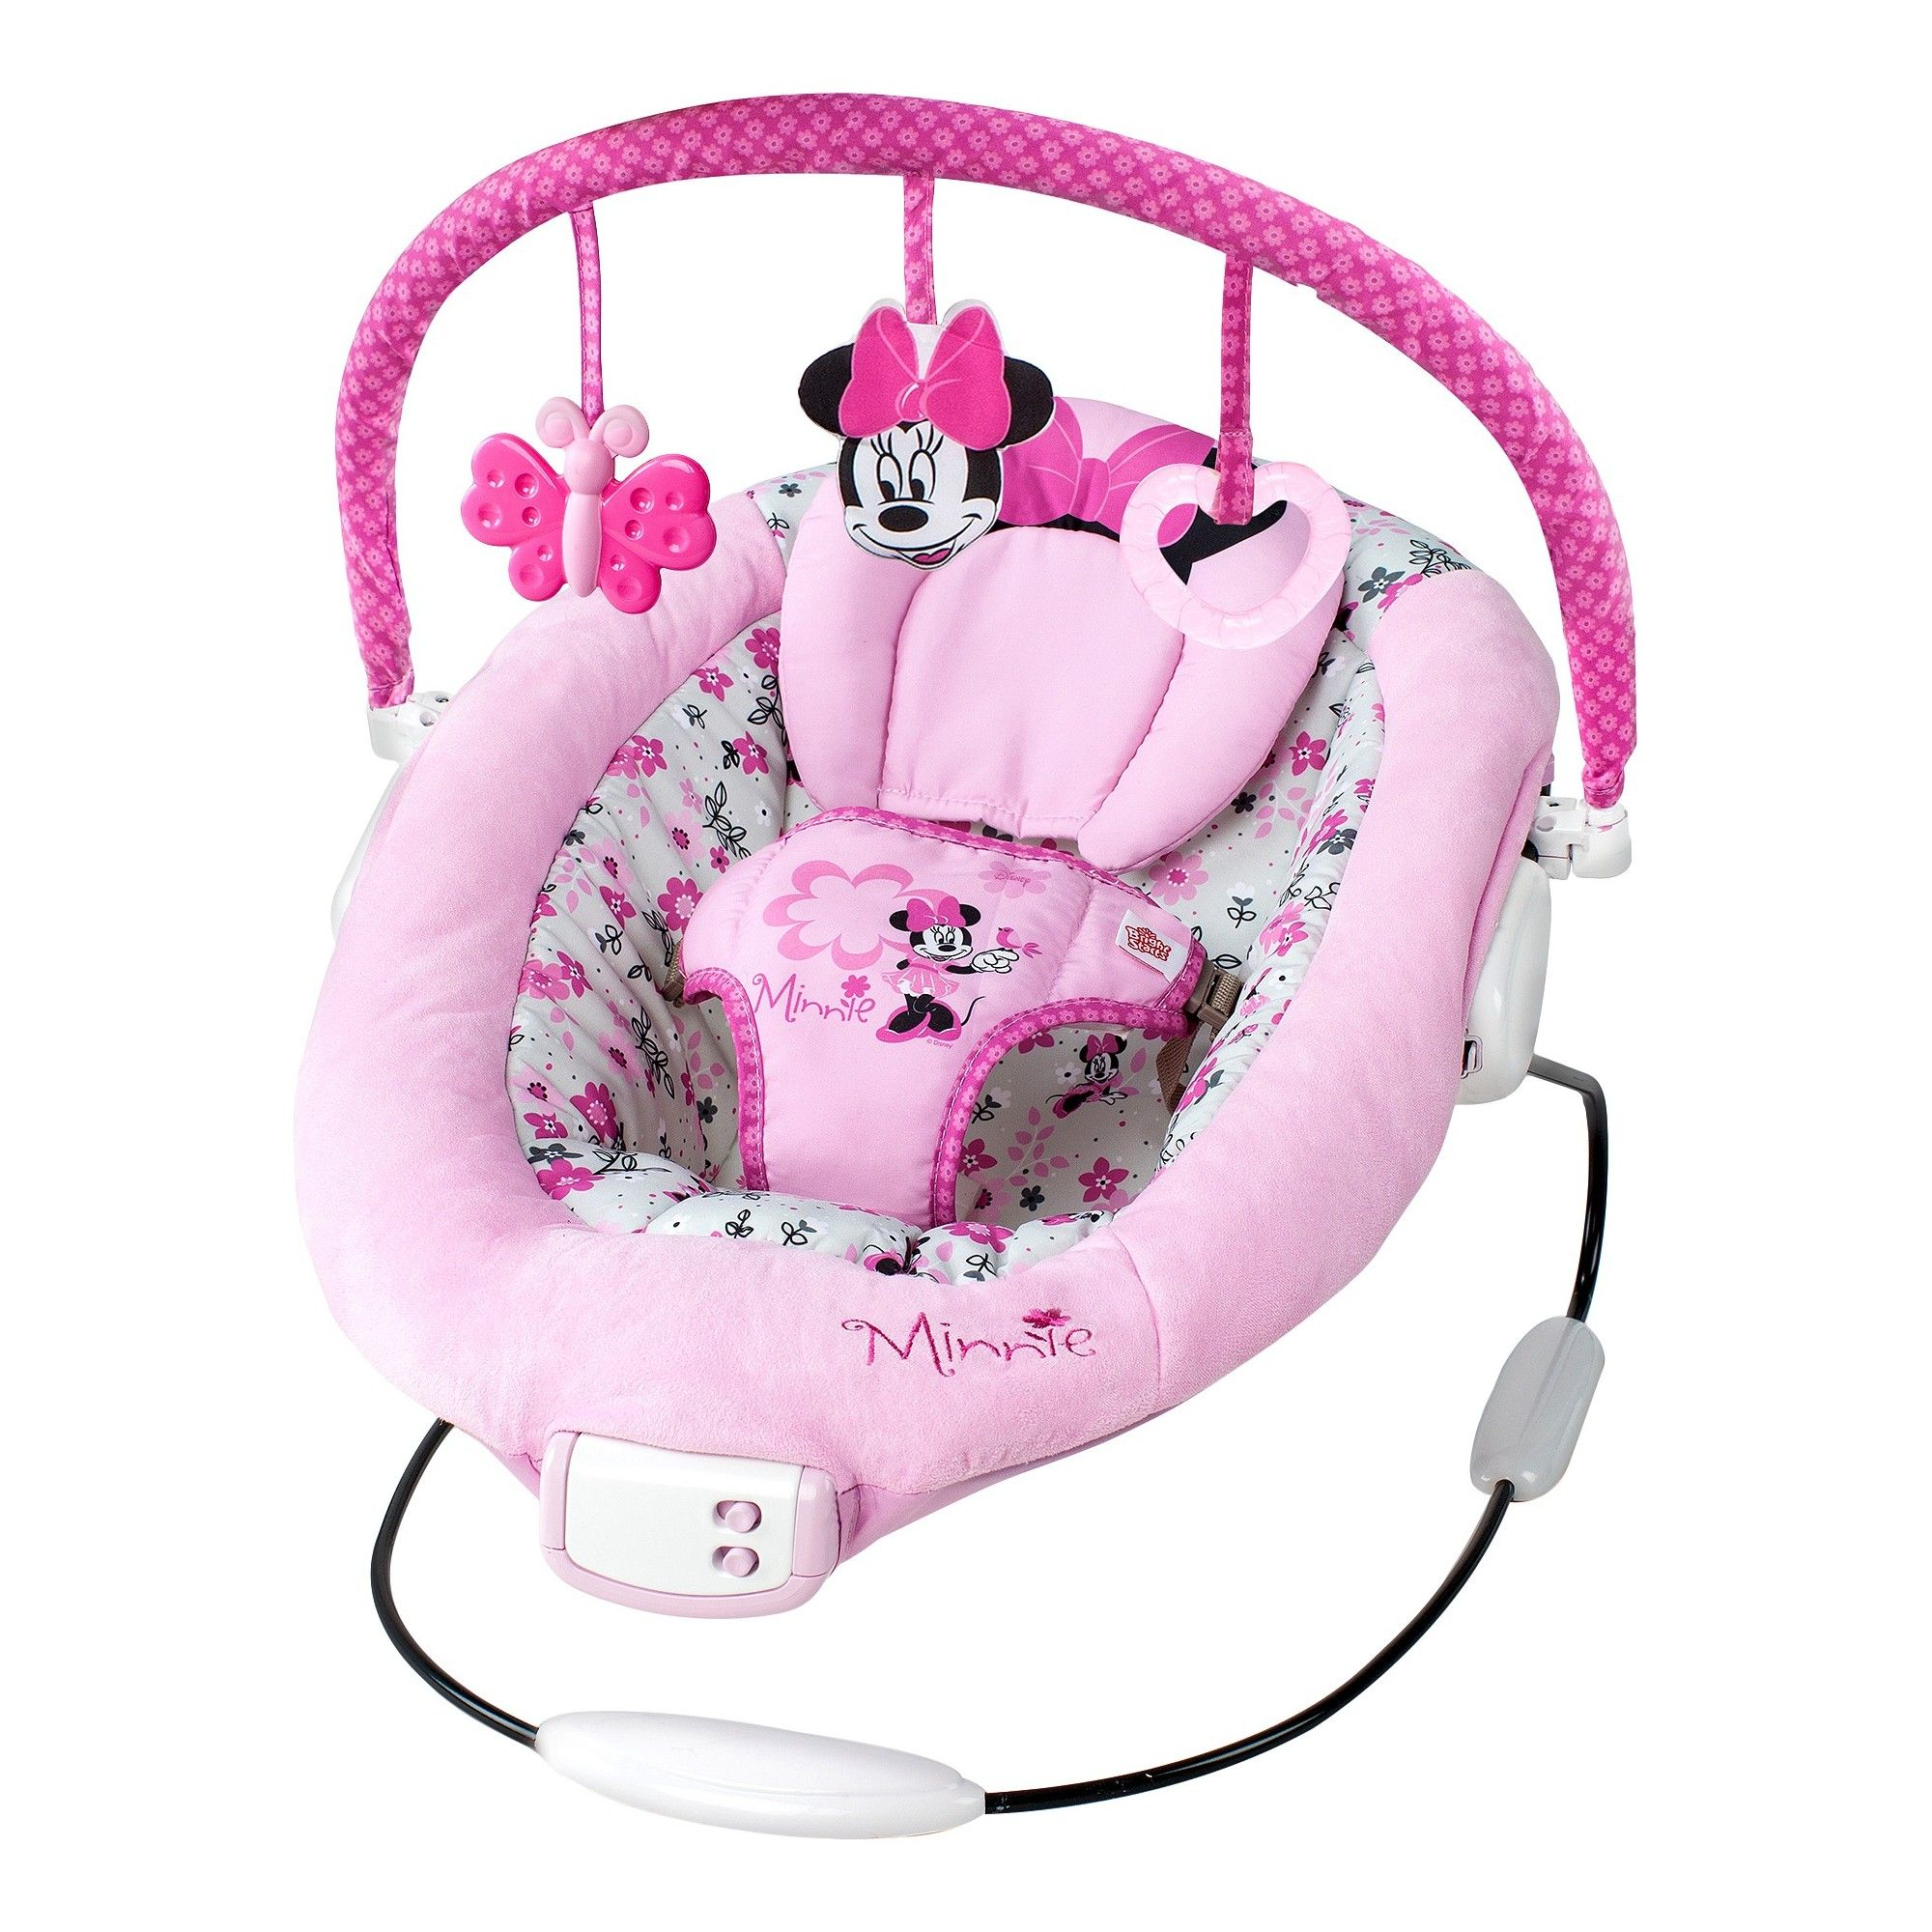 548bd9f5bb26 Disney Baby Minnie Mouse Garden Delights Bouncer